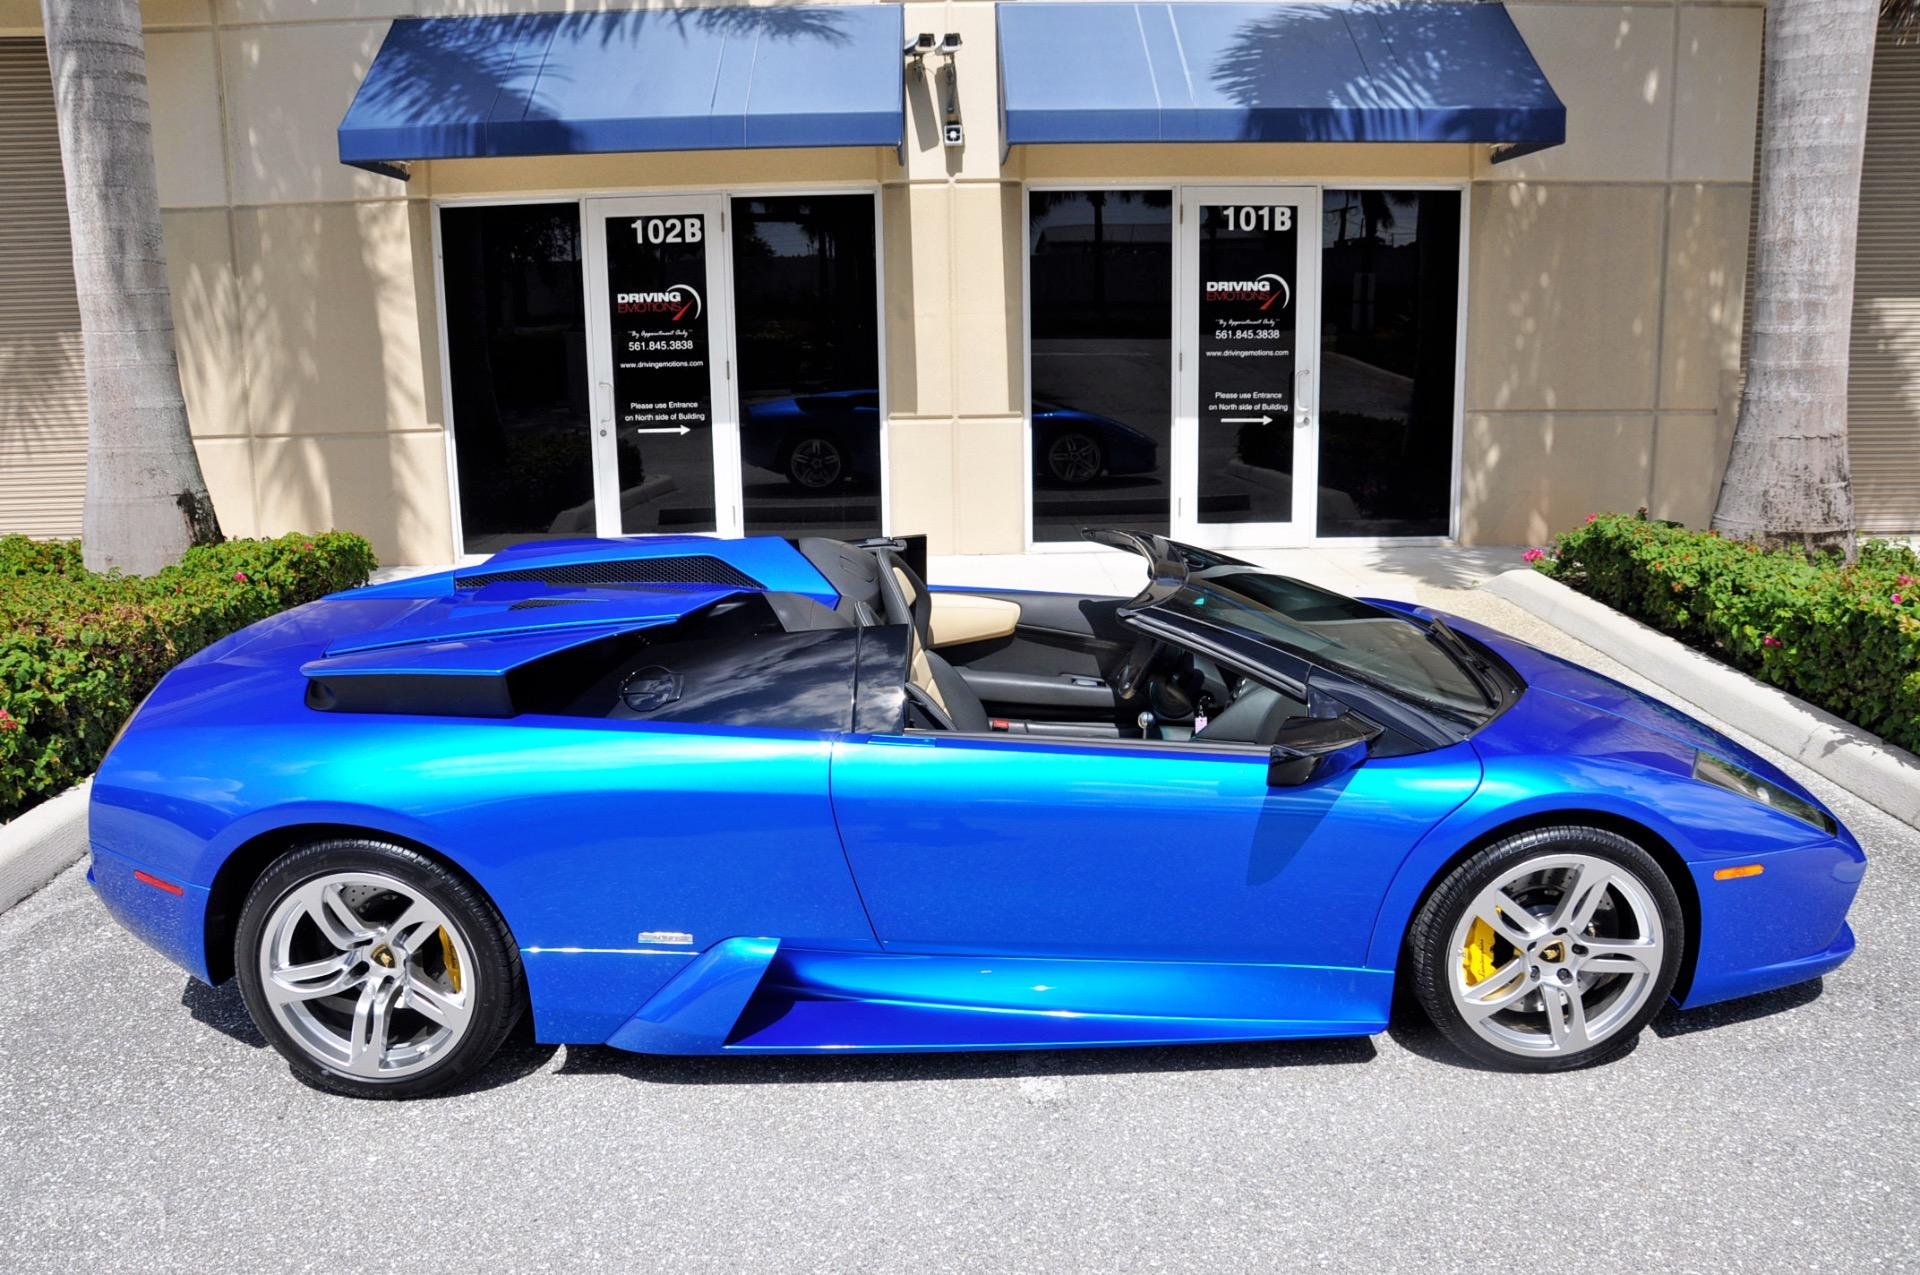 Used 2006 Lamborghini Murcielago Roadster 6-SPEED MANUAL!! | Lake Park, FL